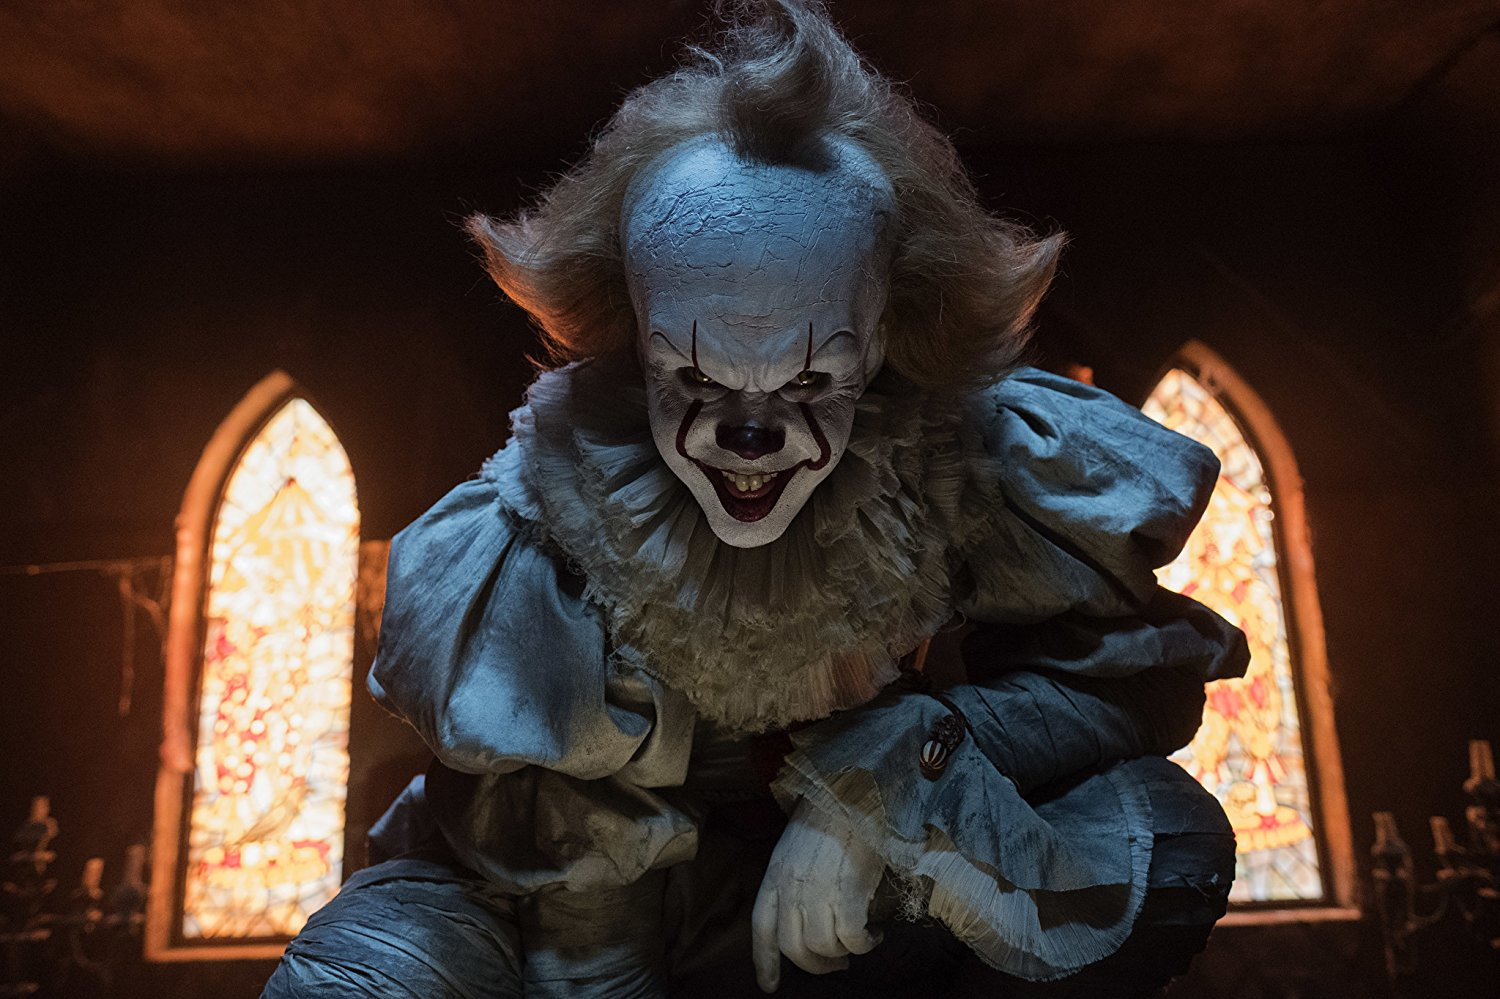 Pennywise: Creepy footage of clown on home's doorstep takes internet by frenzy